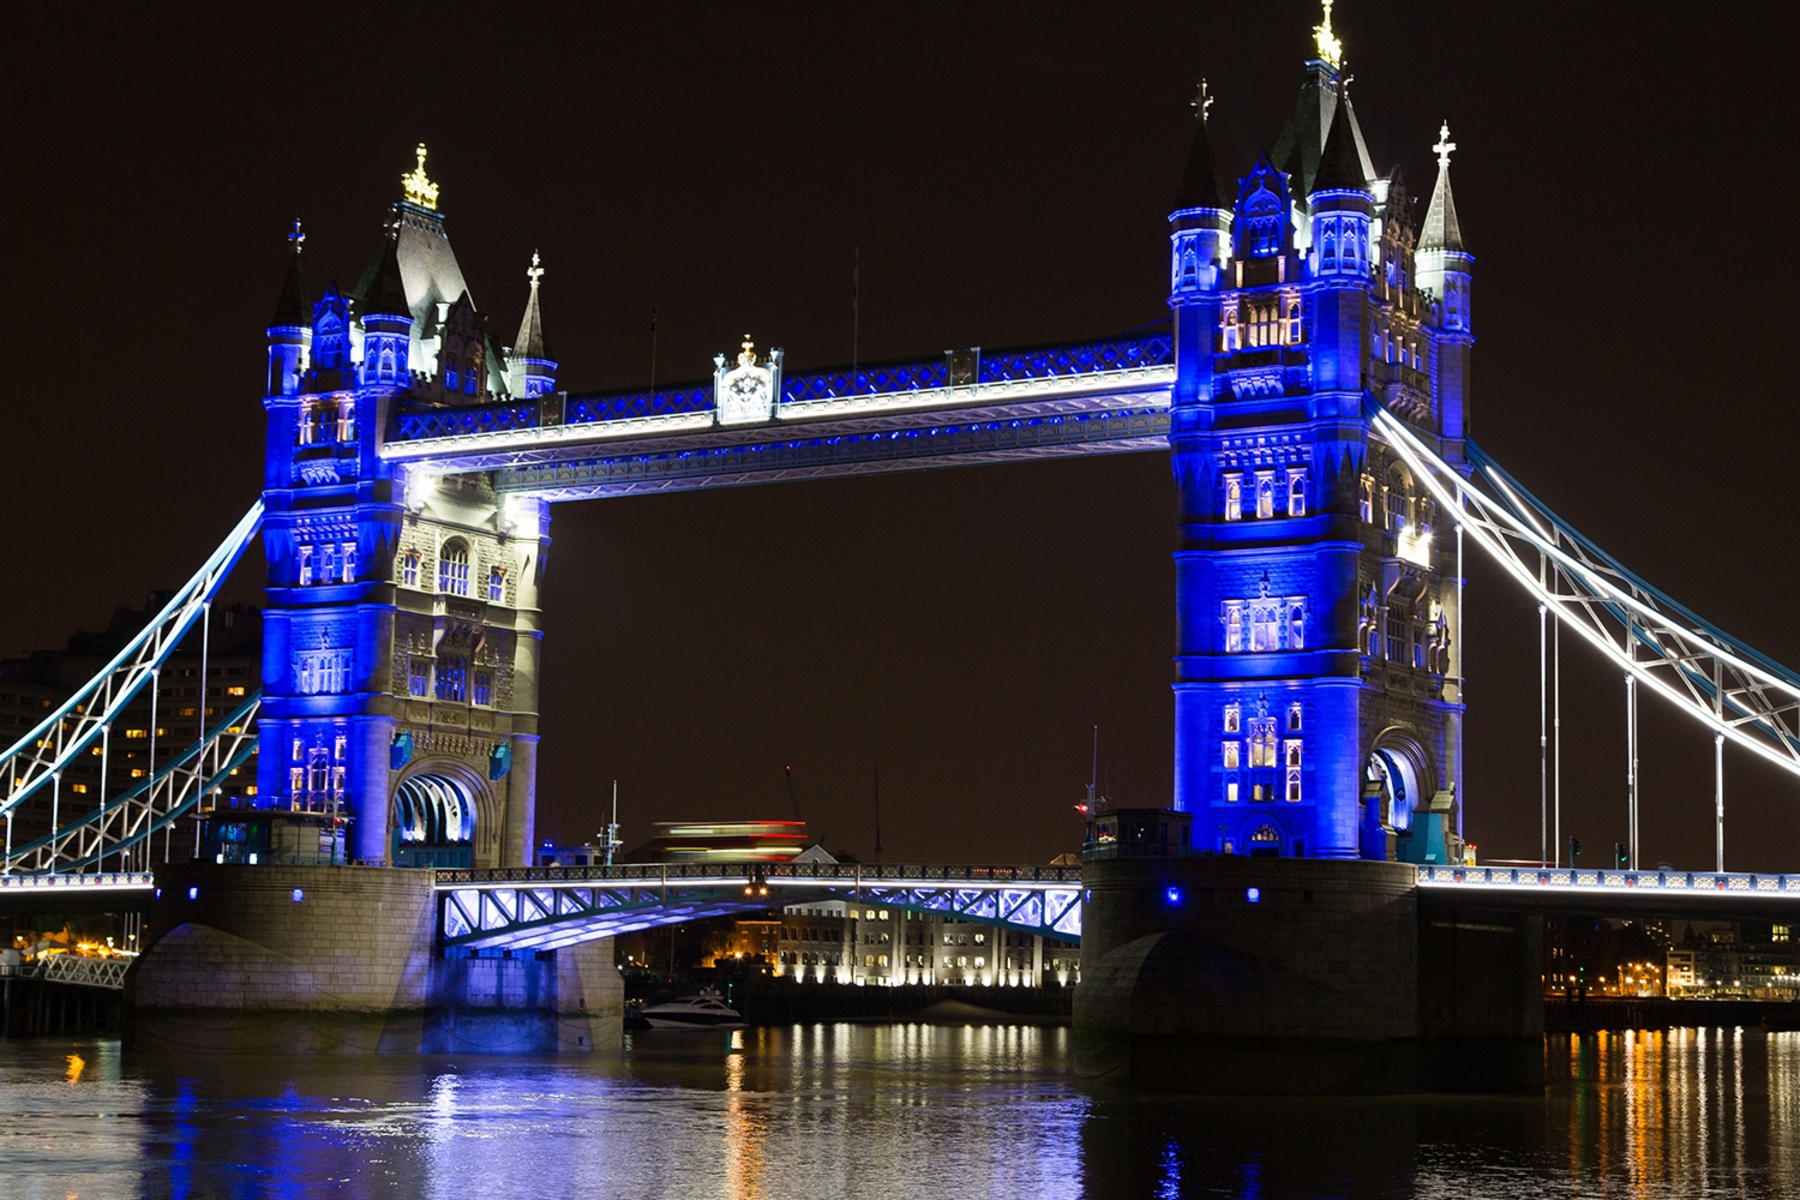 Image: Blue Tower Bridge